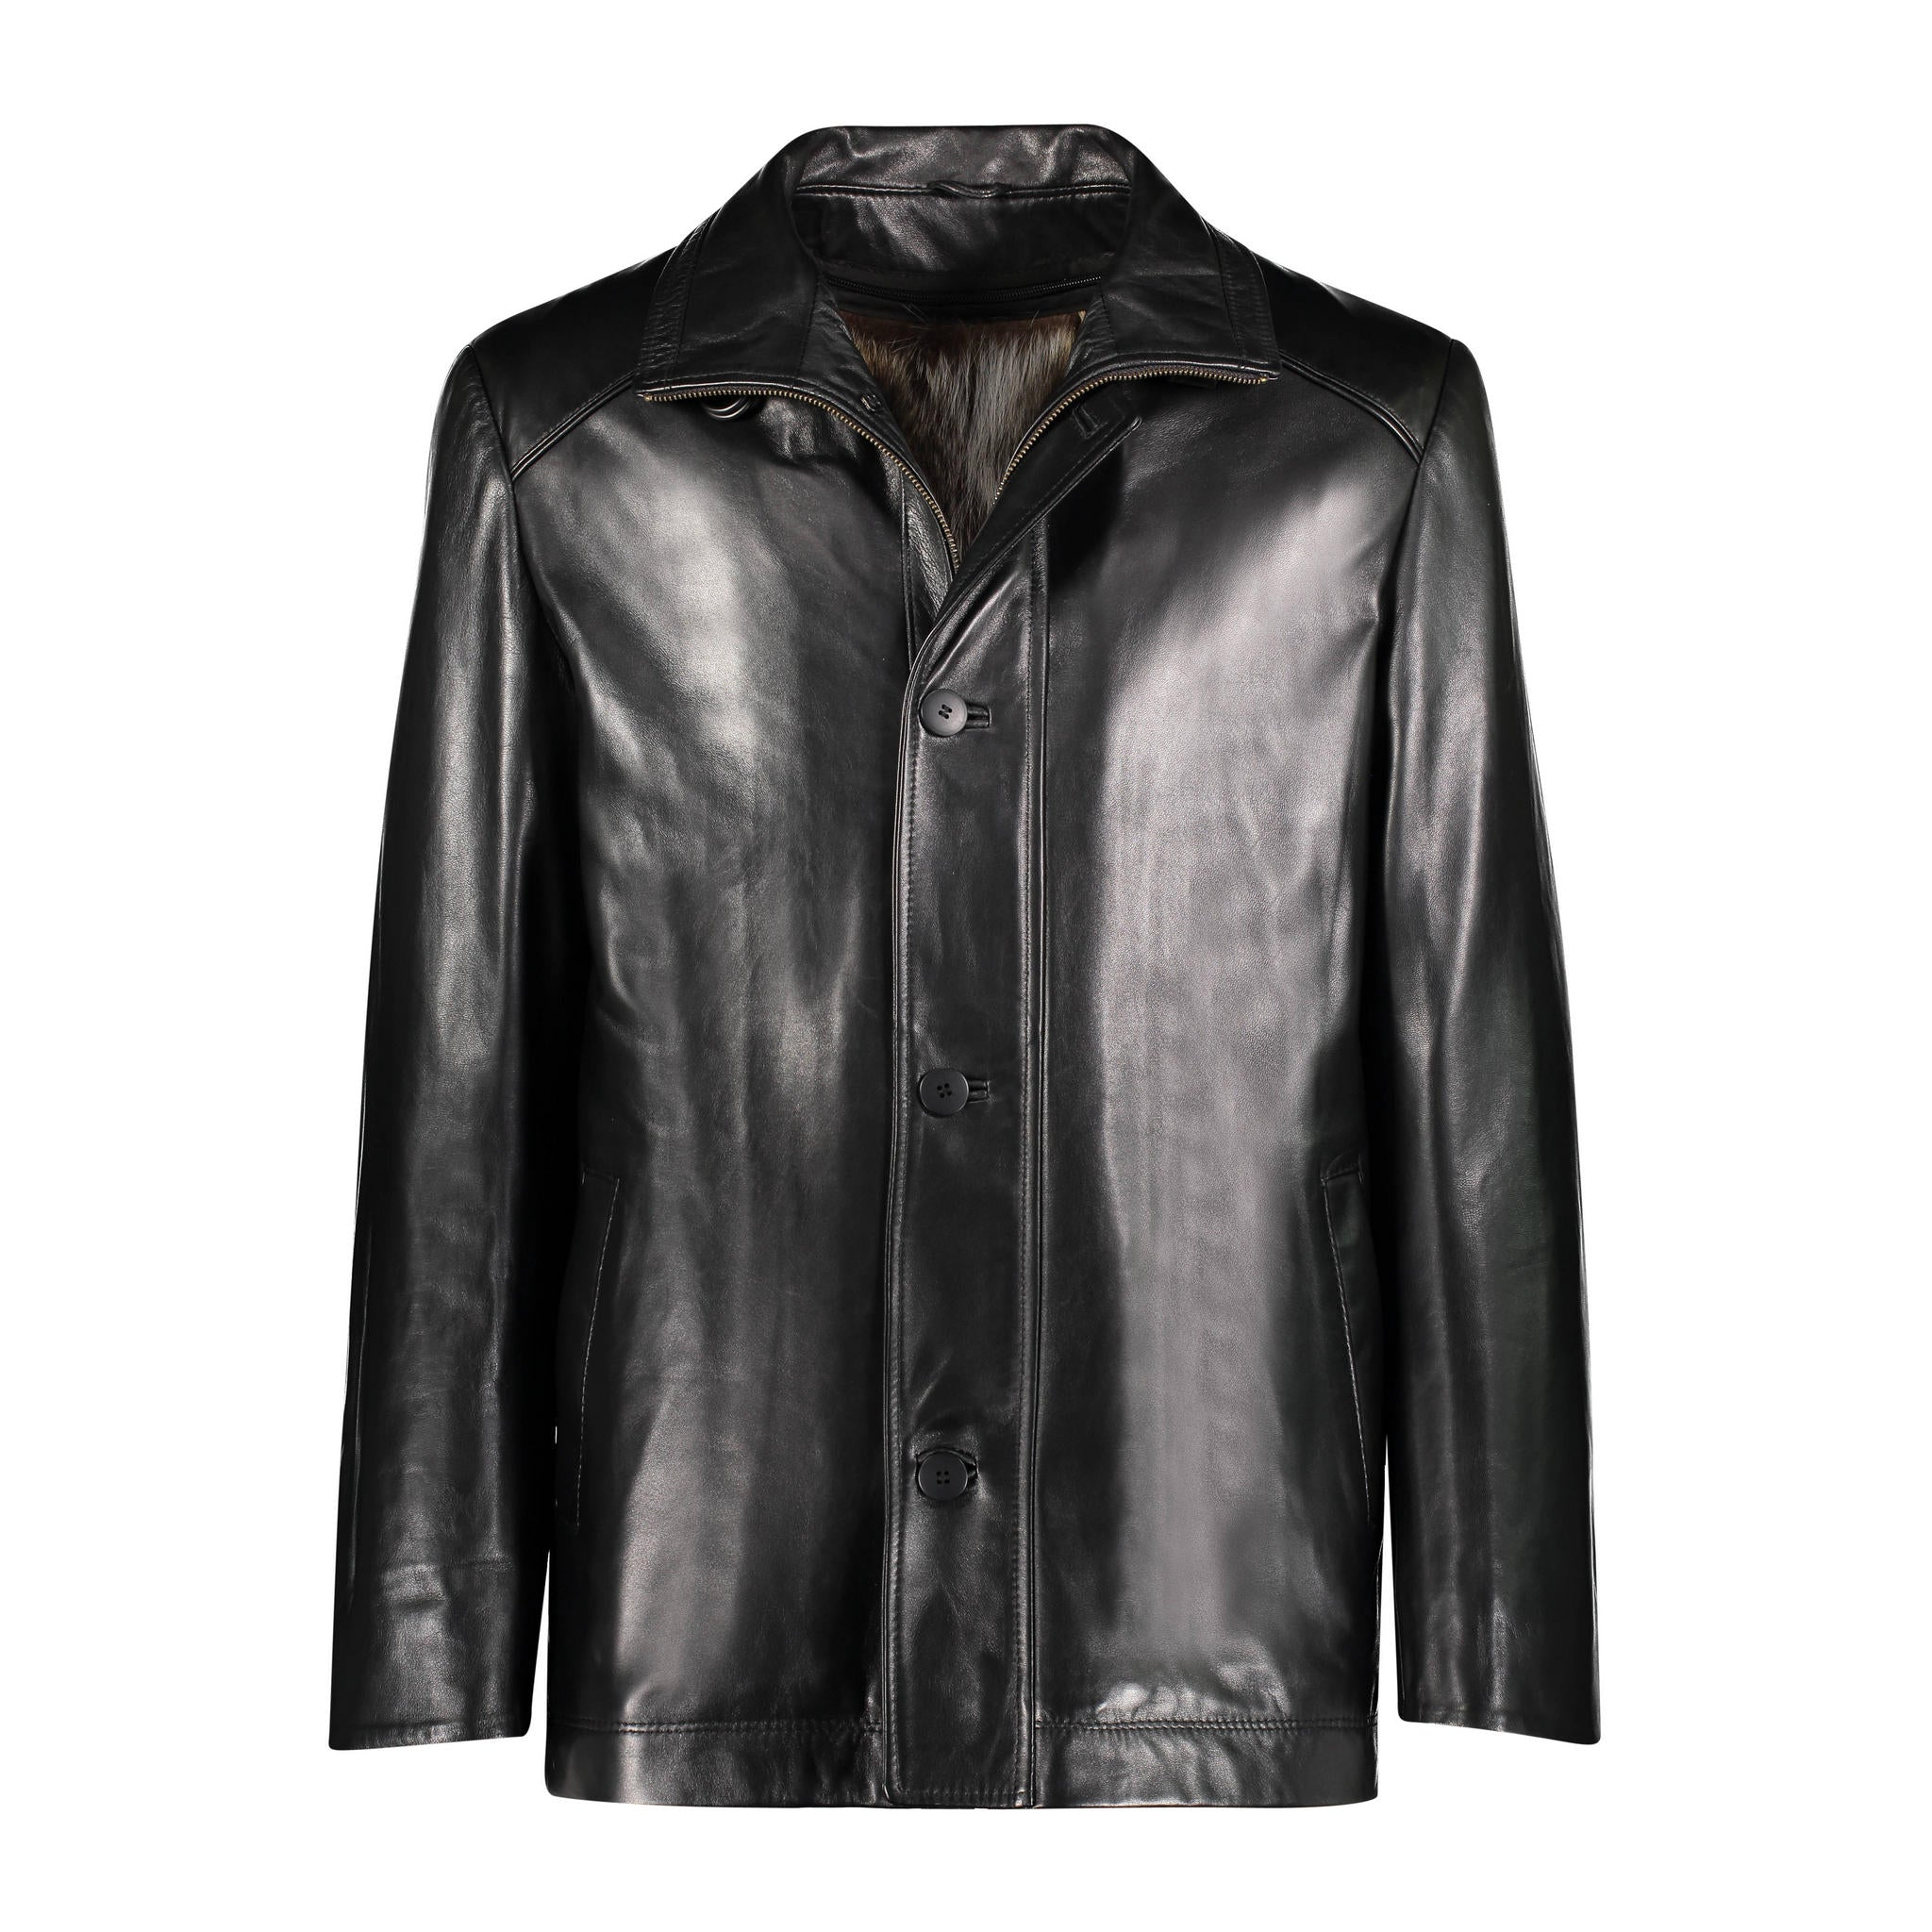 Hudson Leather Jacket with Raccoon Lining Jacket